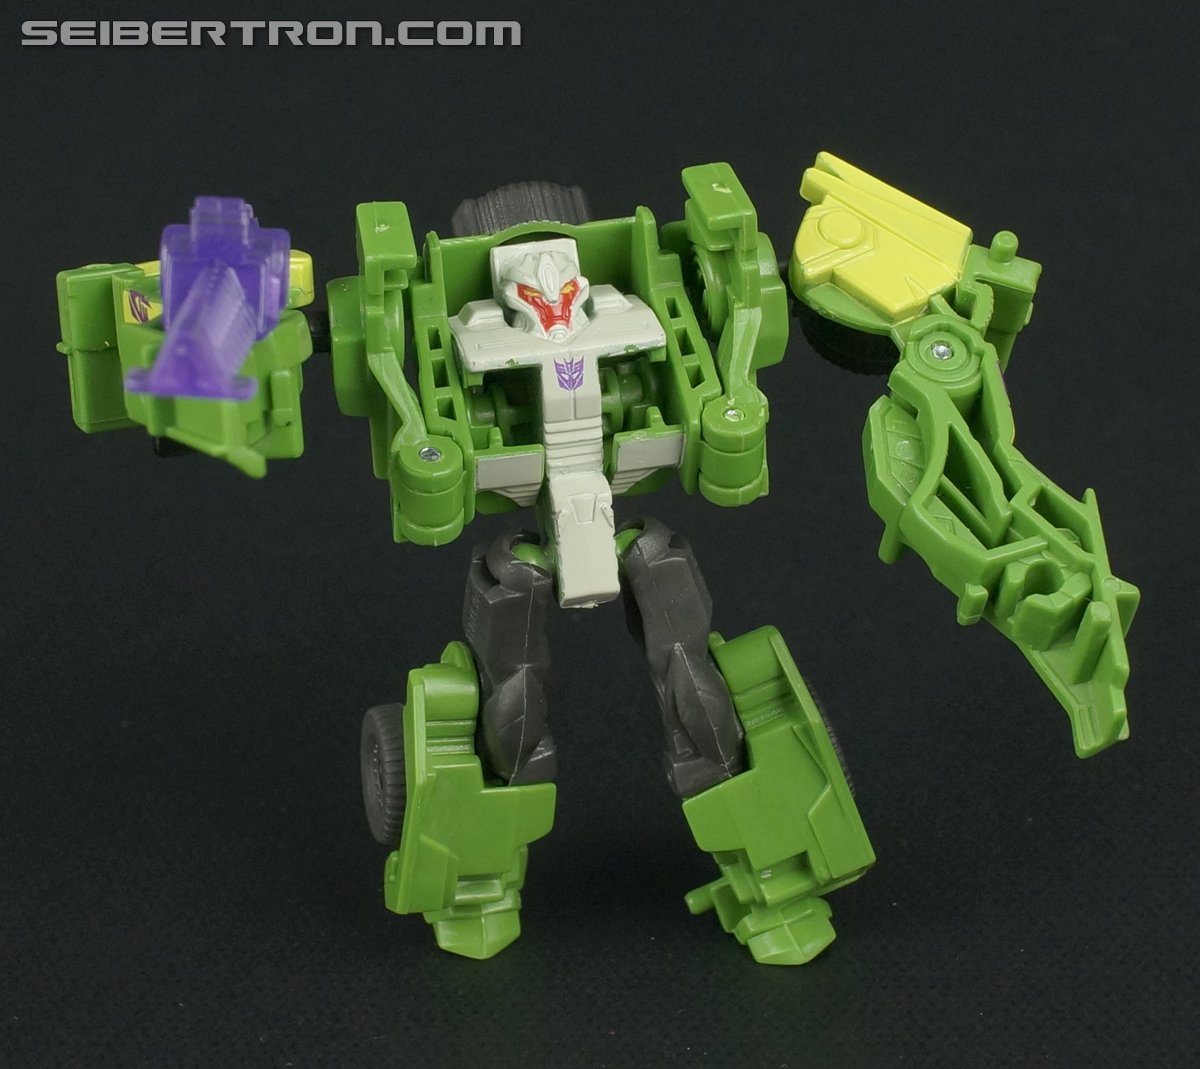 Transformers Prime Beast Hunters Cyberverse Breakdown (Apex Hunter Armor) (Image #69 of 96)